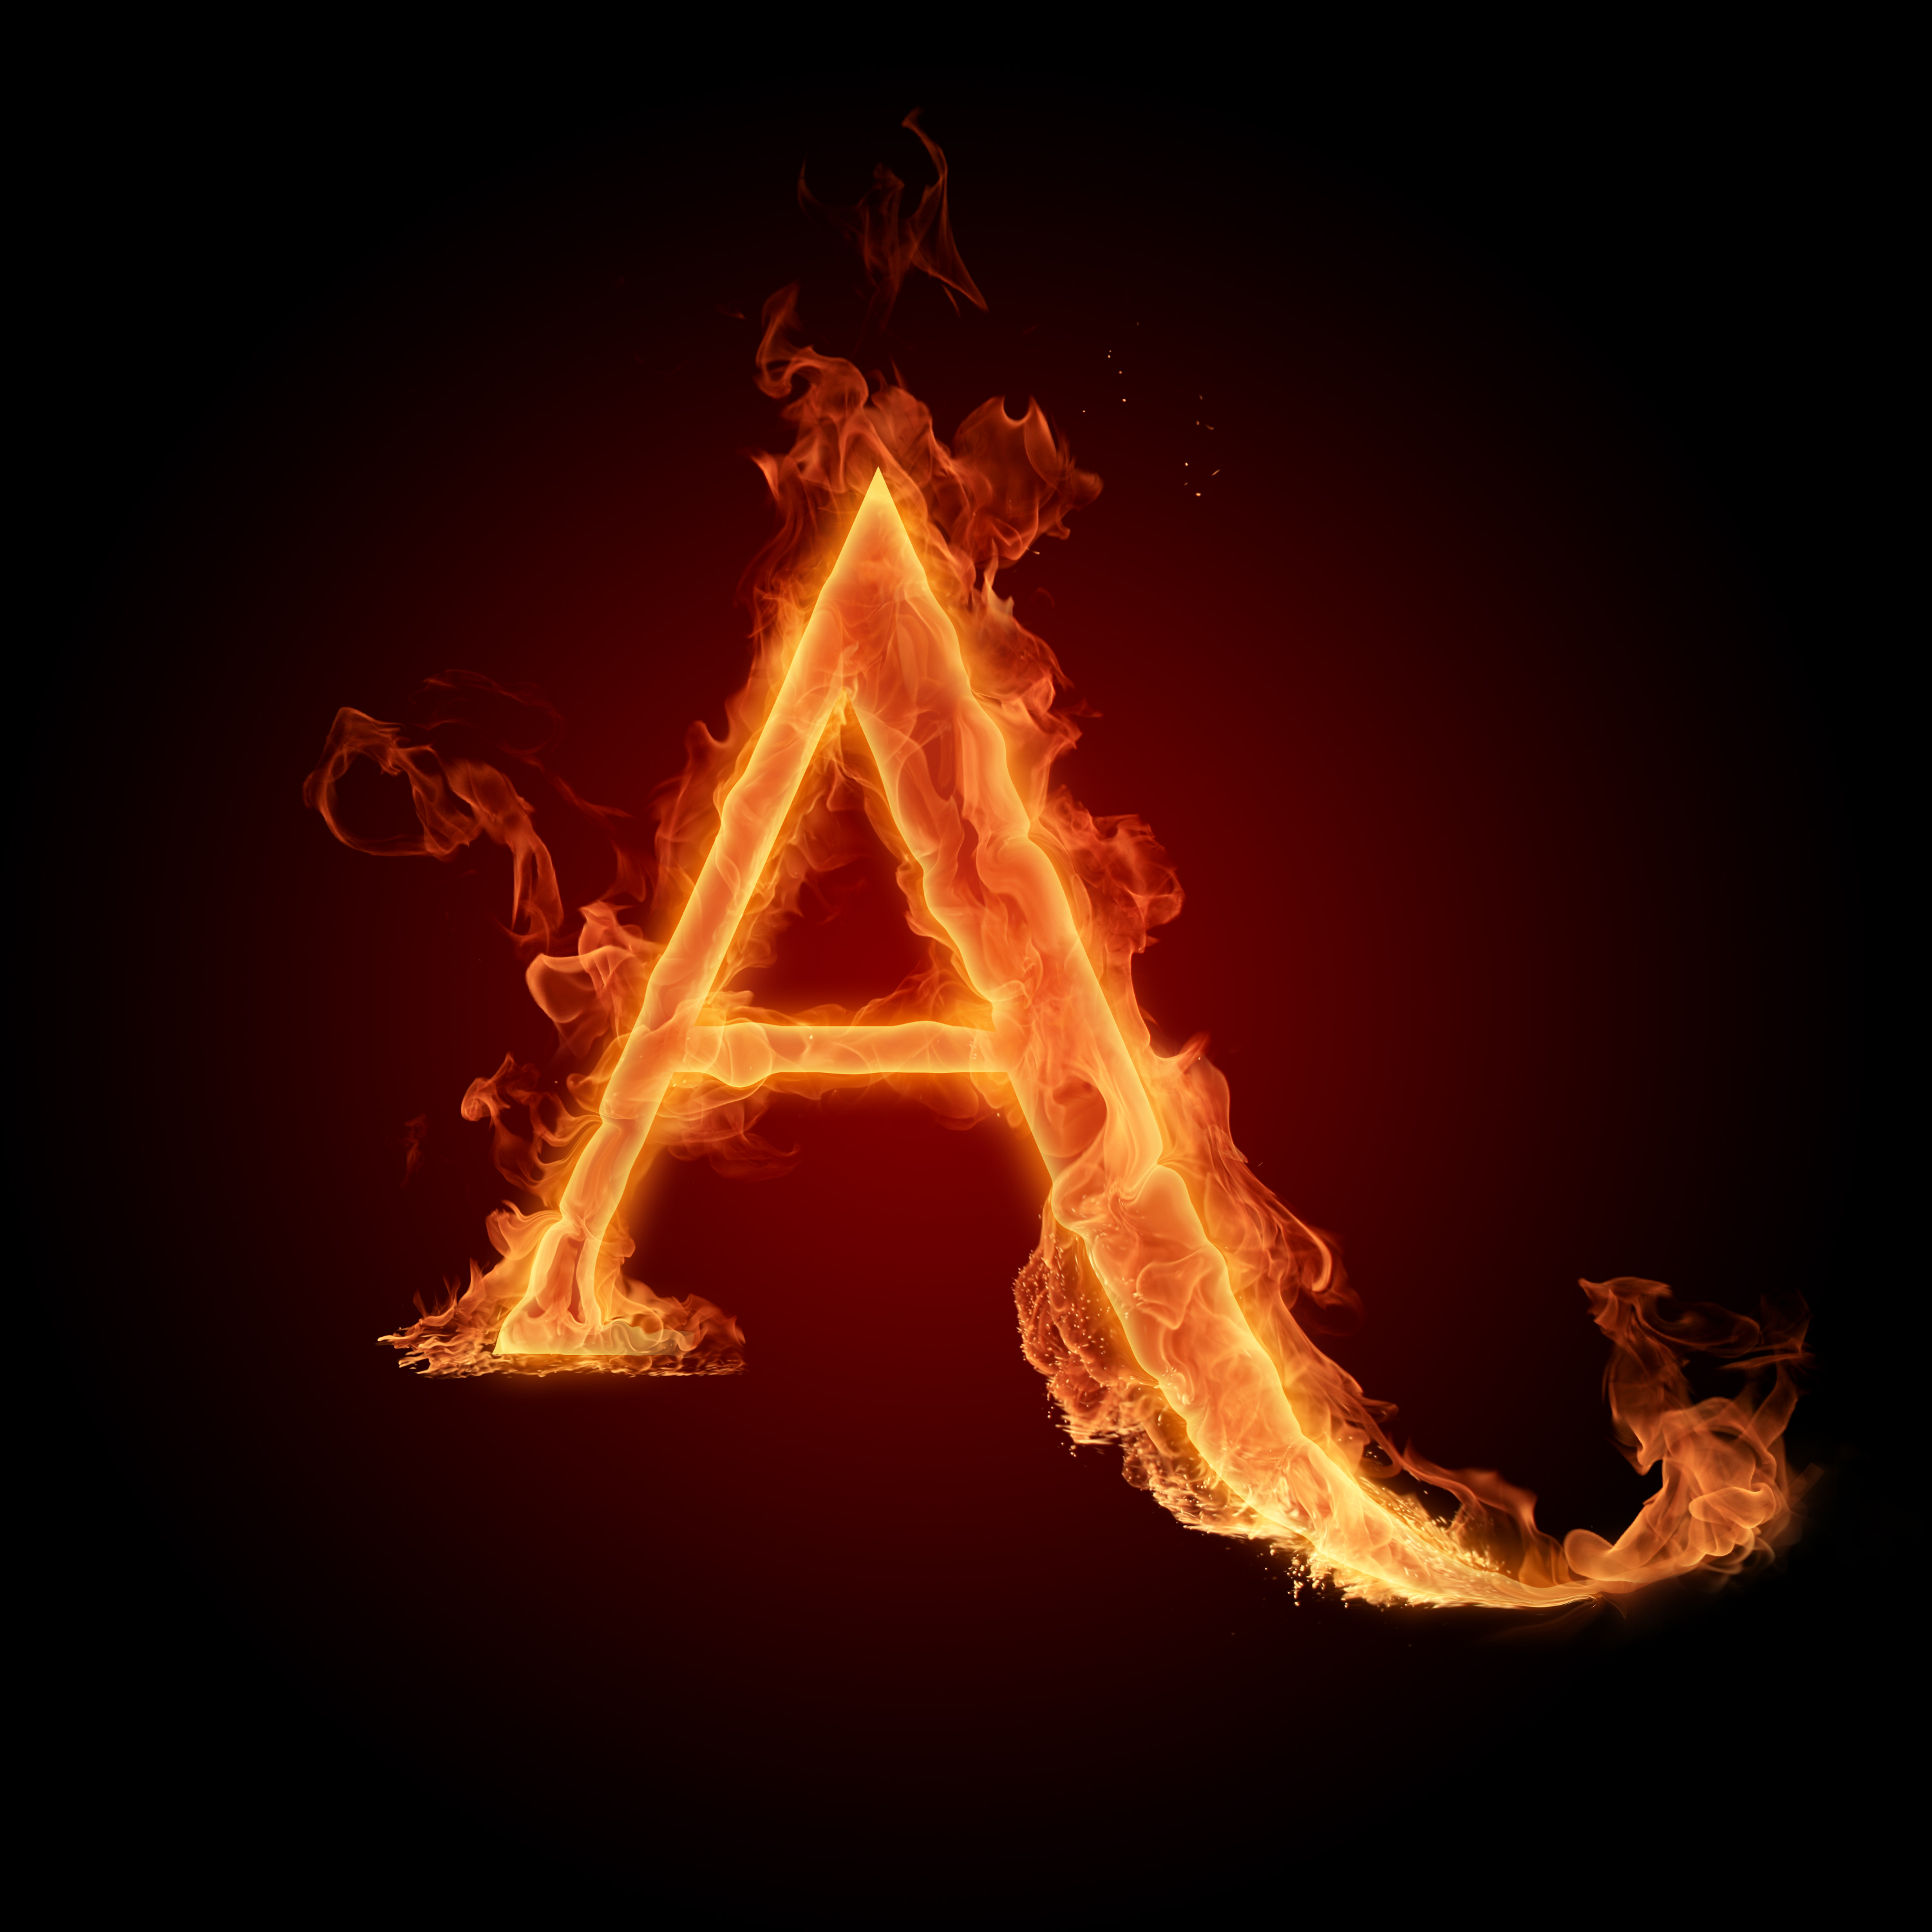 Fire Letters HD A F   Photo 1 of 6 phombocom 3000x3000